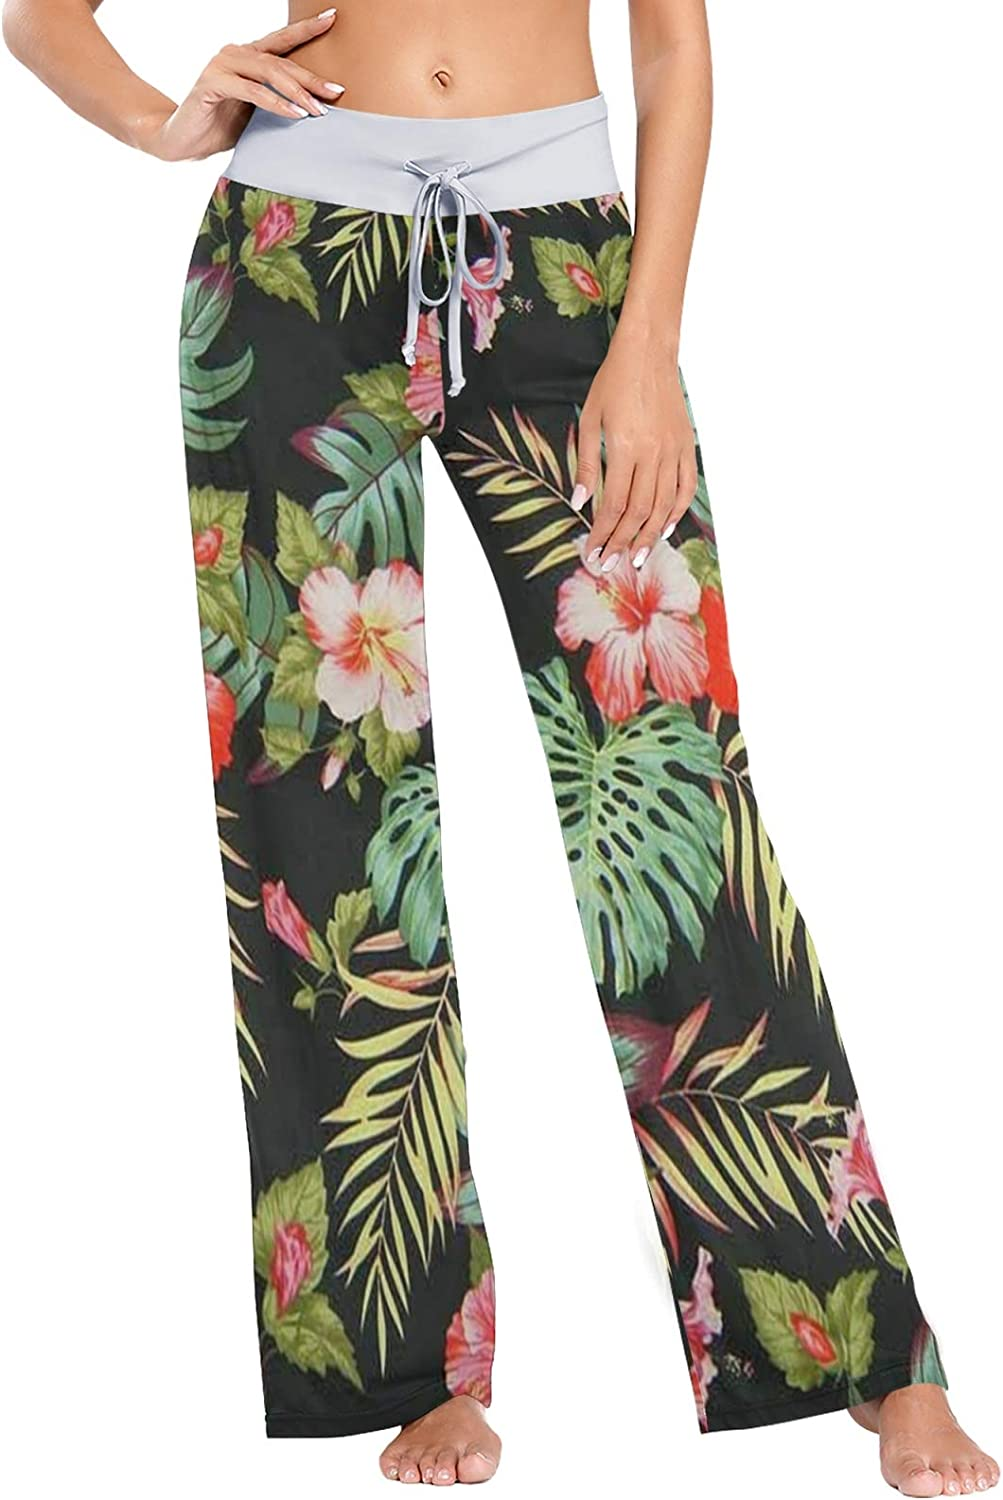 Sales for sale MSACRH Pajama Pants for Charming Flowers Women Sleepwear Limited time free shipping